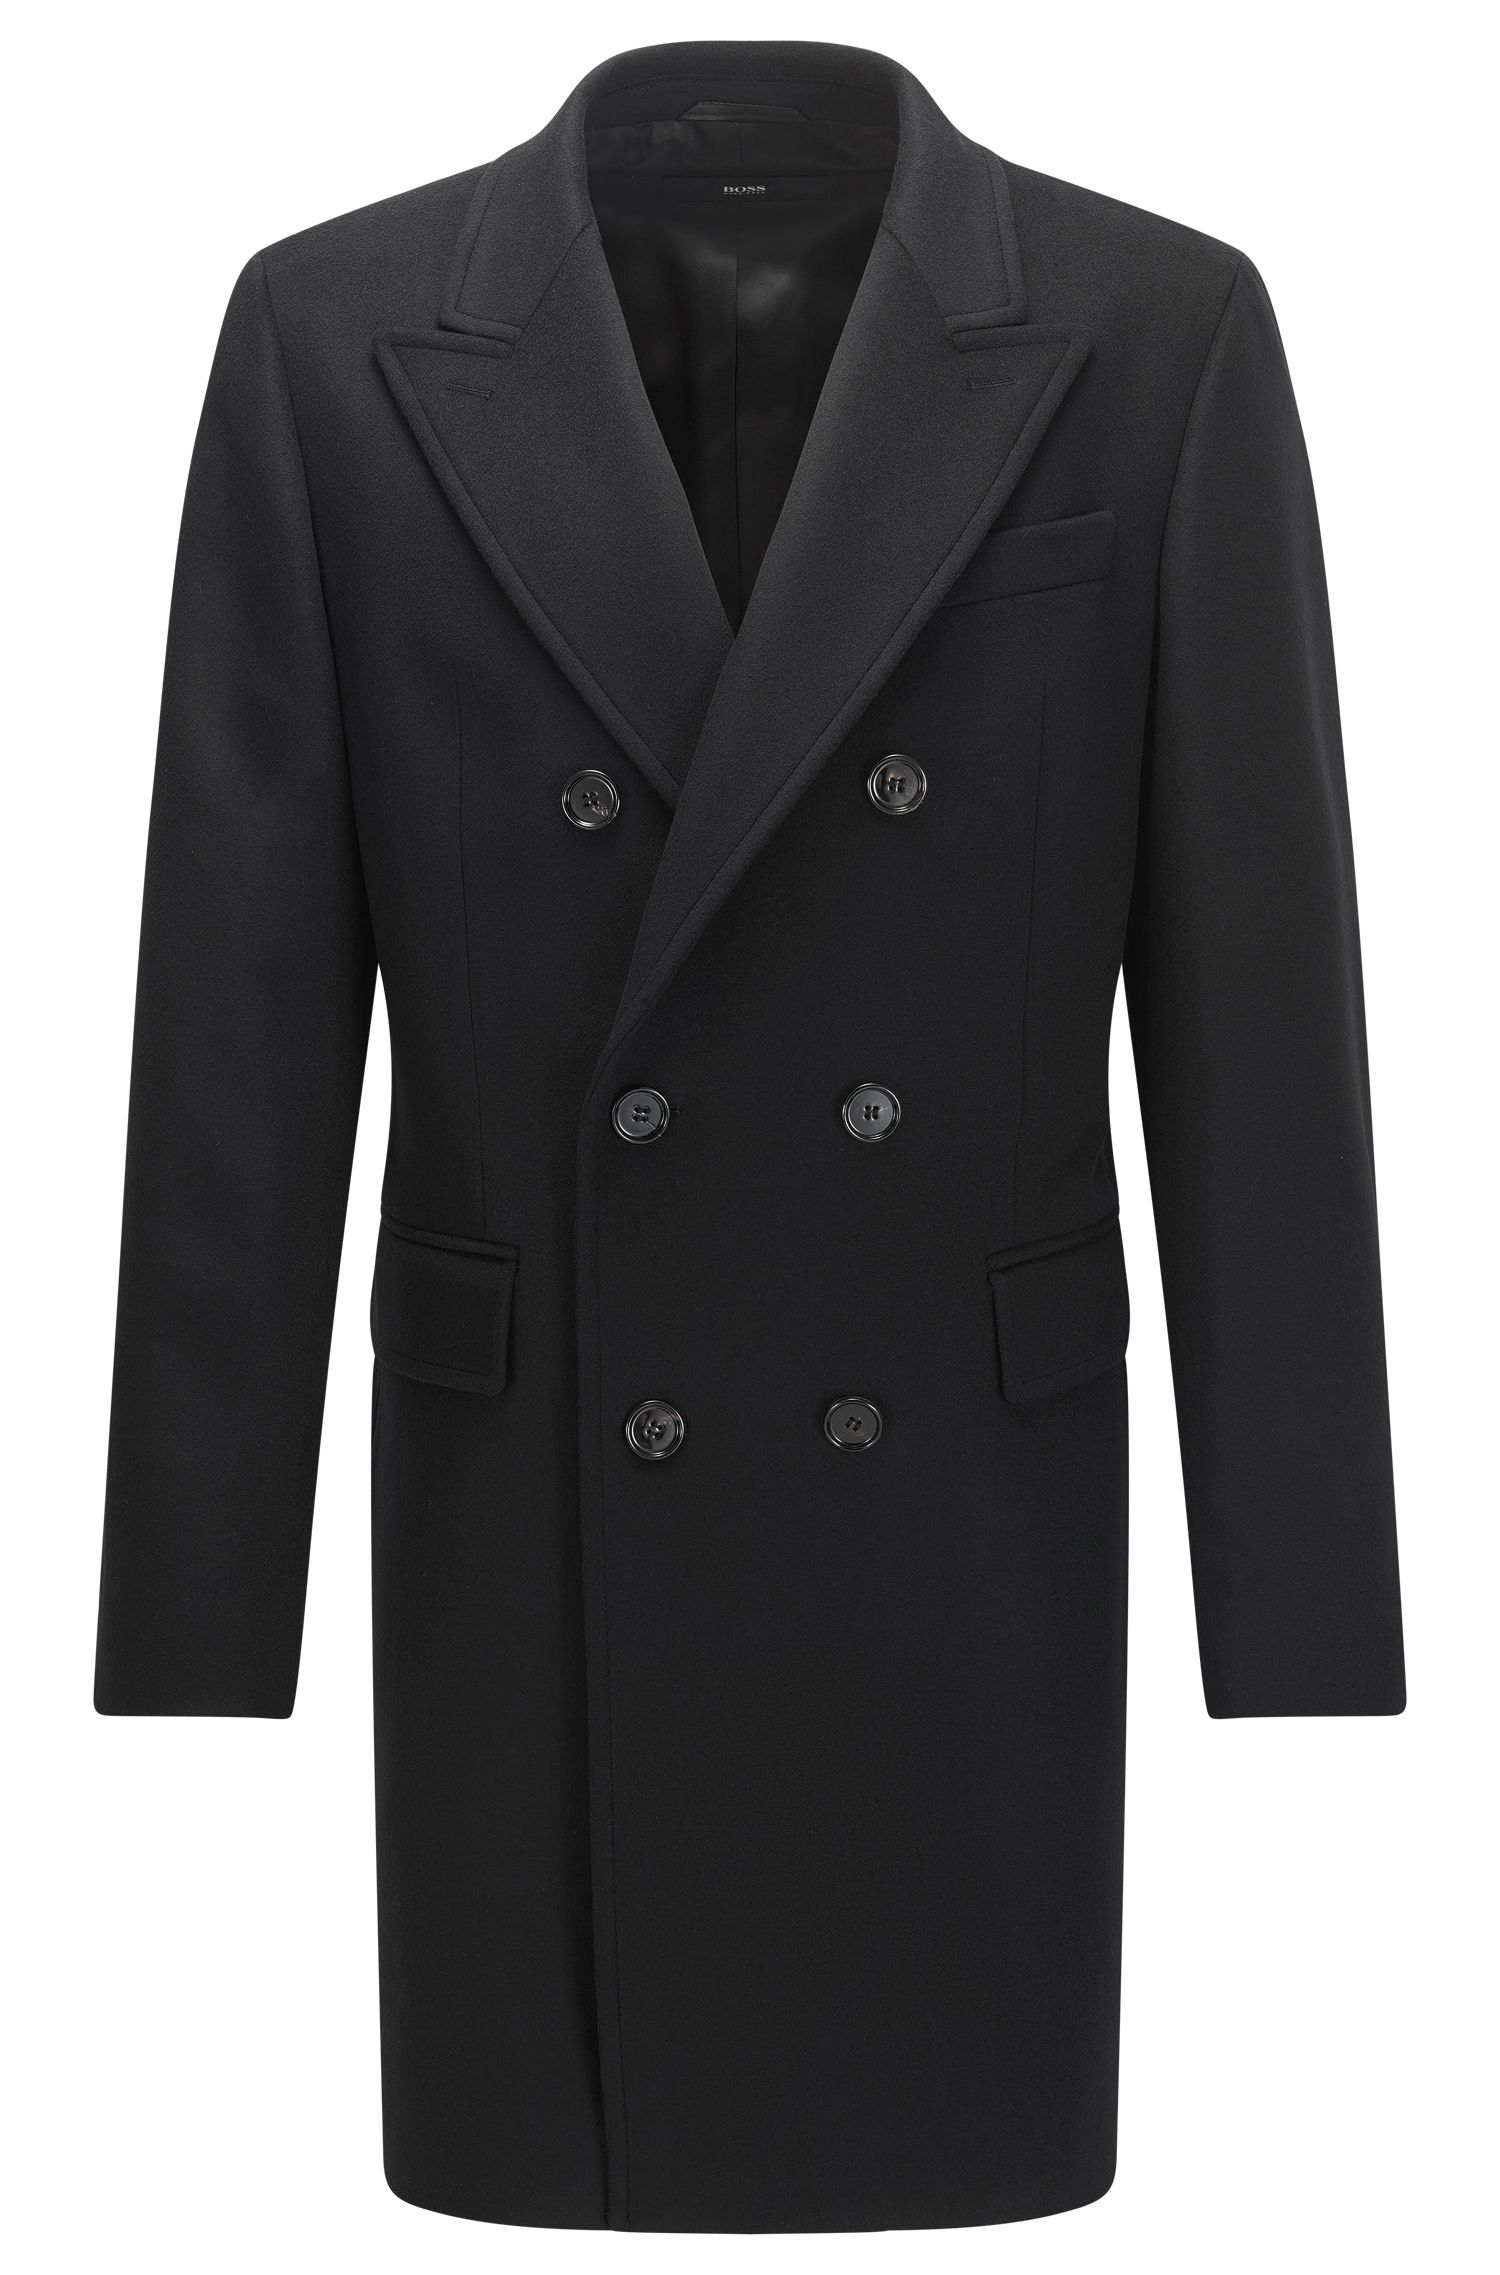 Double-breasted wool-blend coat in a slim fit